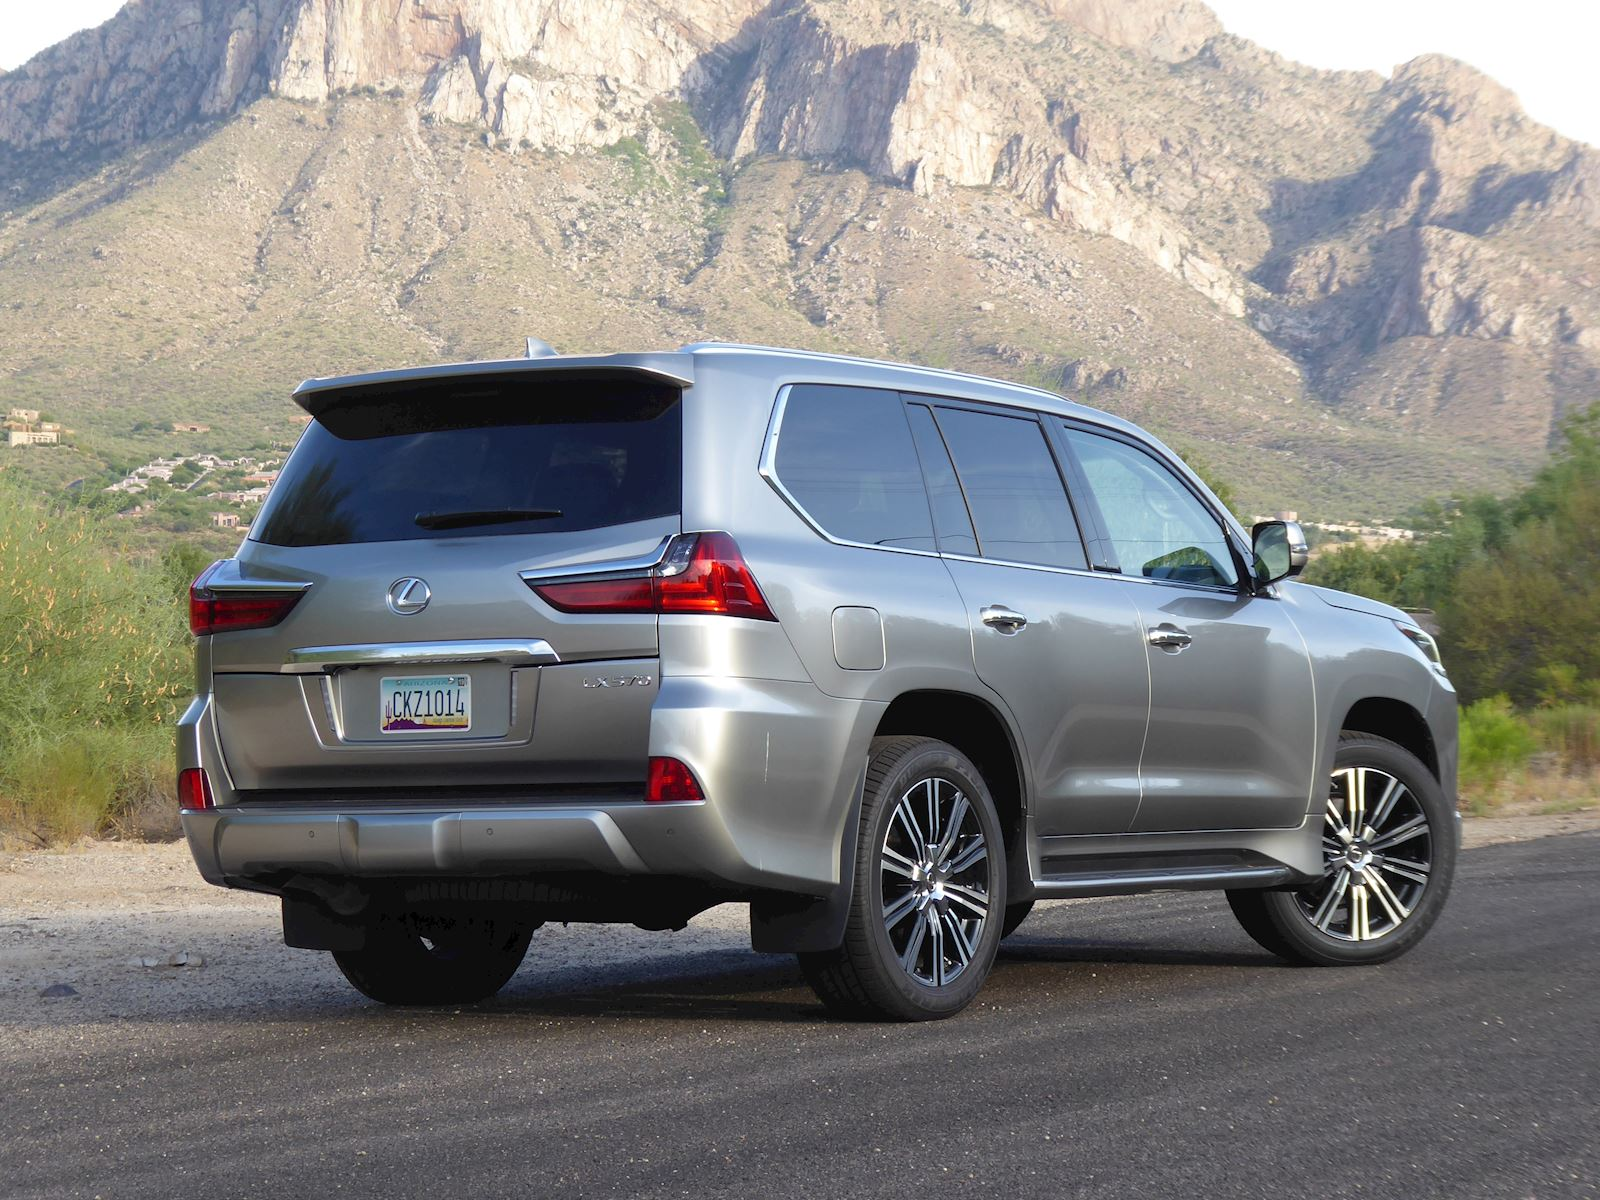 2020 Lexus LX 570 Rear Beauty